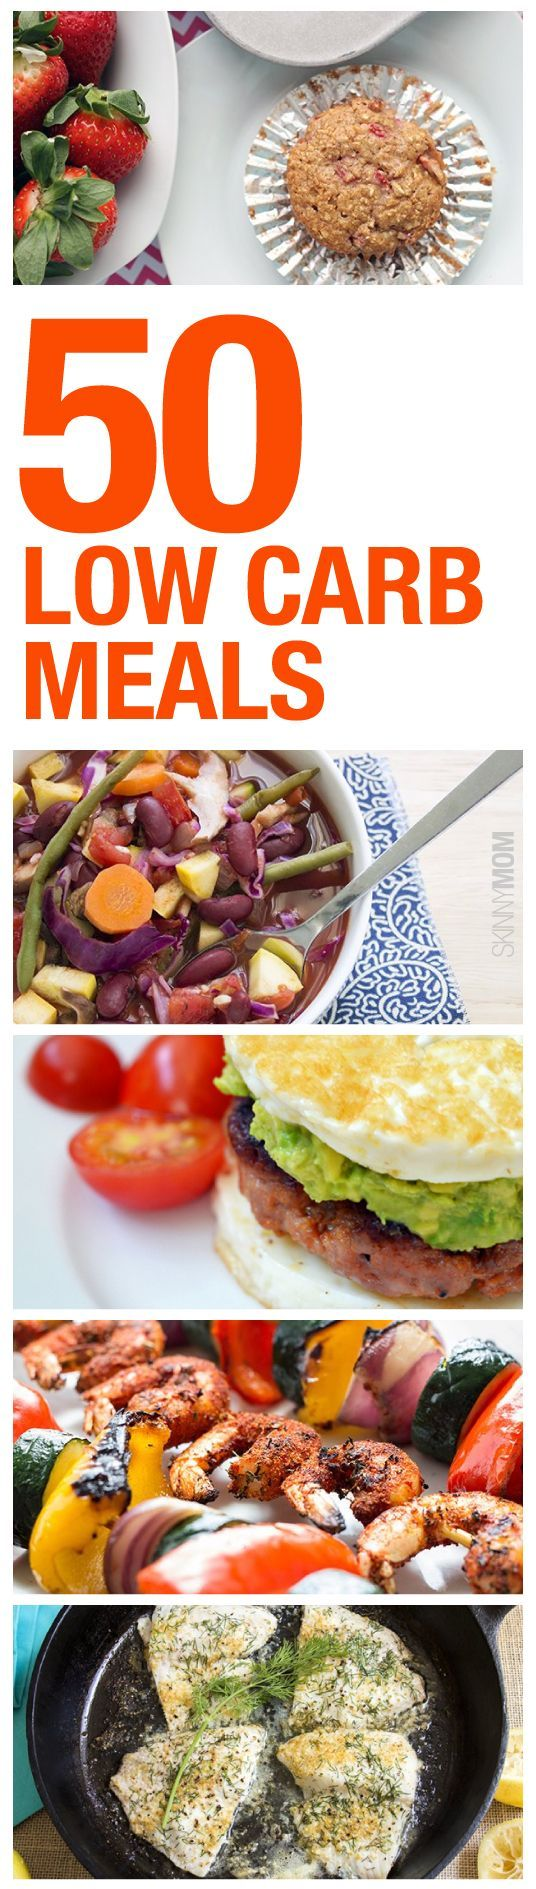 Watching your carb intake? Check out these 50 low carb breakfasts lunches dinners and snack options that will keep your body in shape and your tastebuds happy!